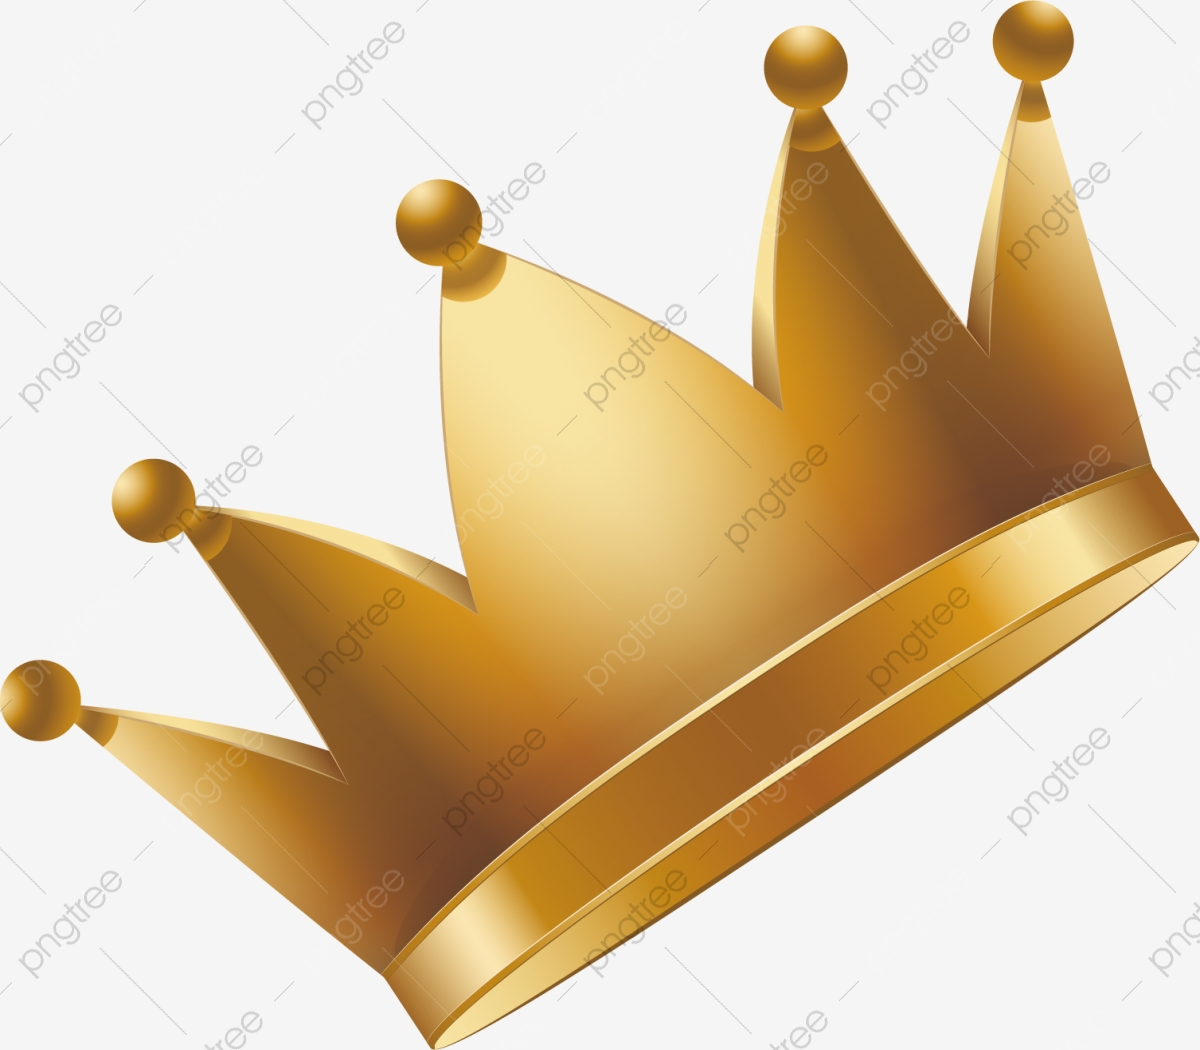 Cartoon Crown Png Images Vector And Psd Files Free Download On Pngtree Almost files can be used for commercial. https pngtree com freepng crown cartoon crown cartoon illustration 3962375 html